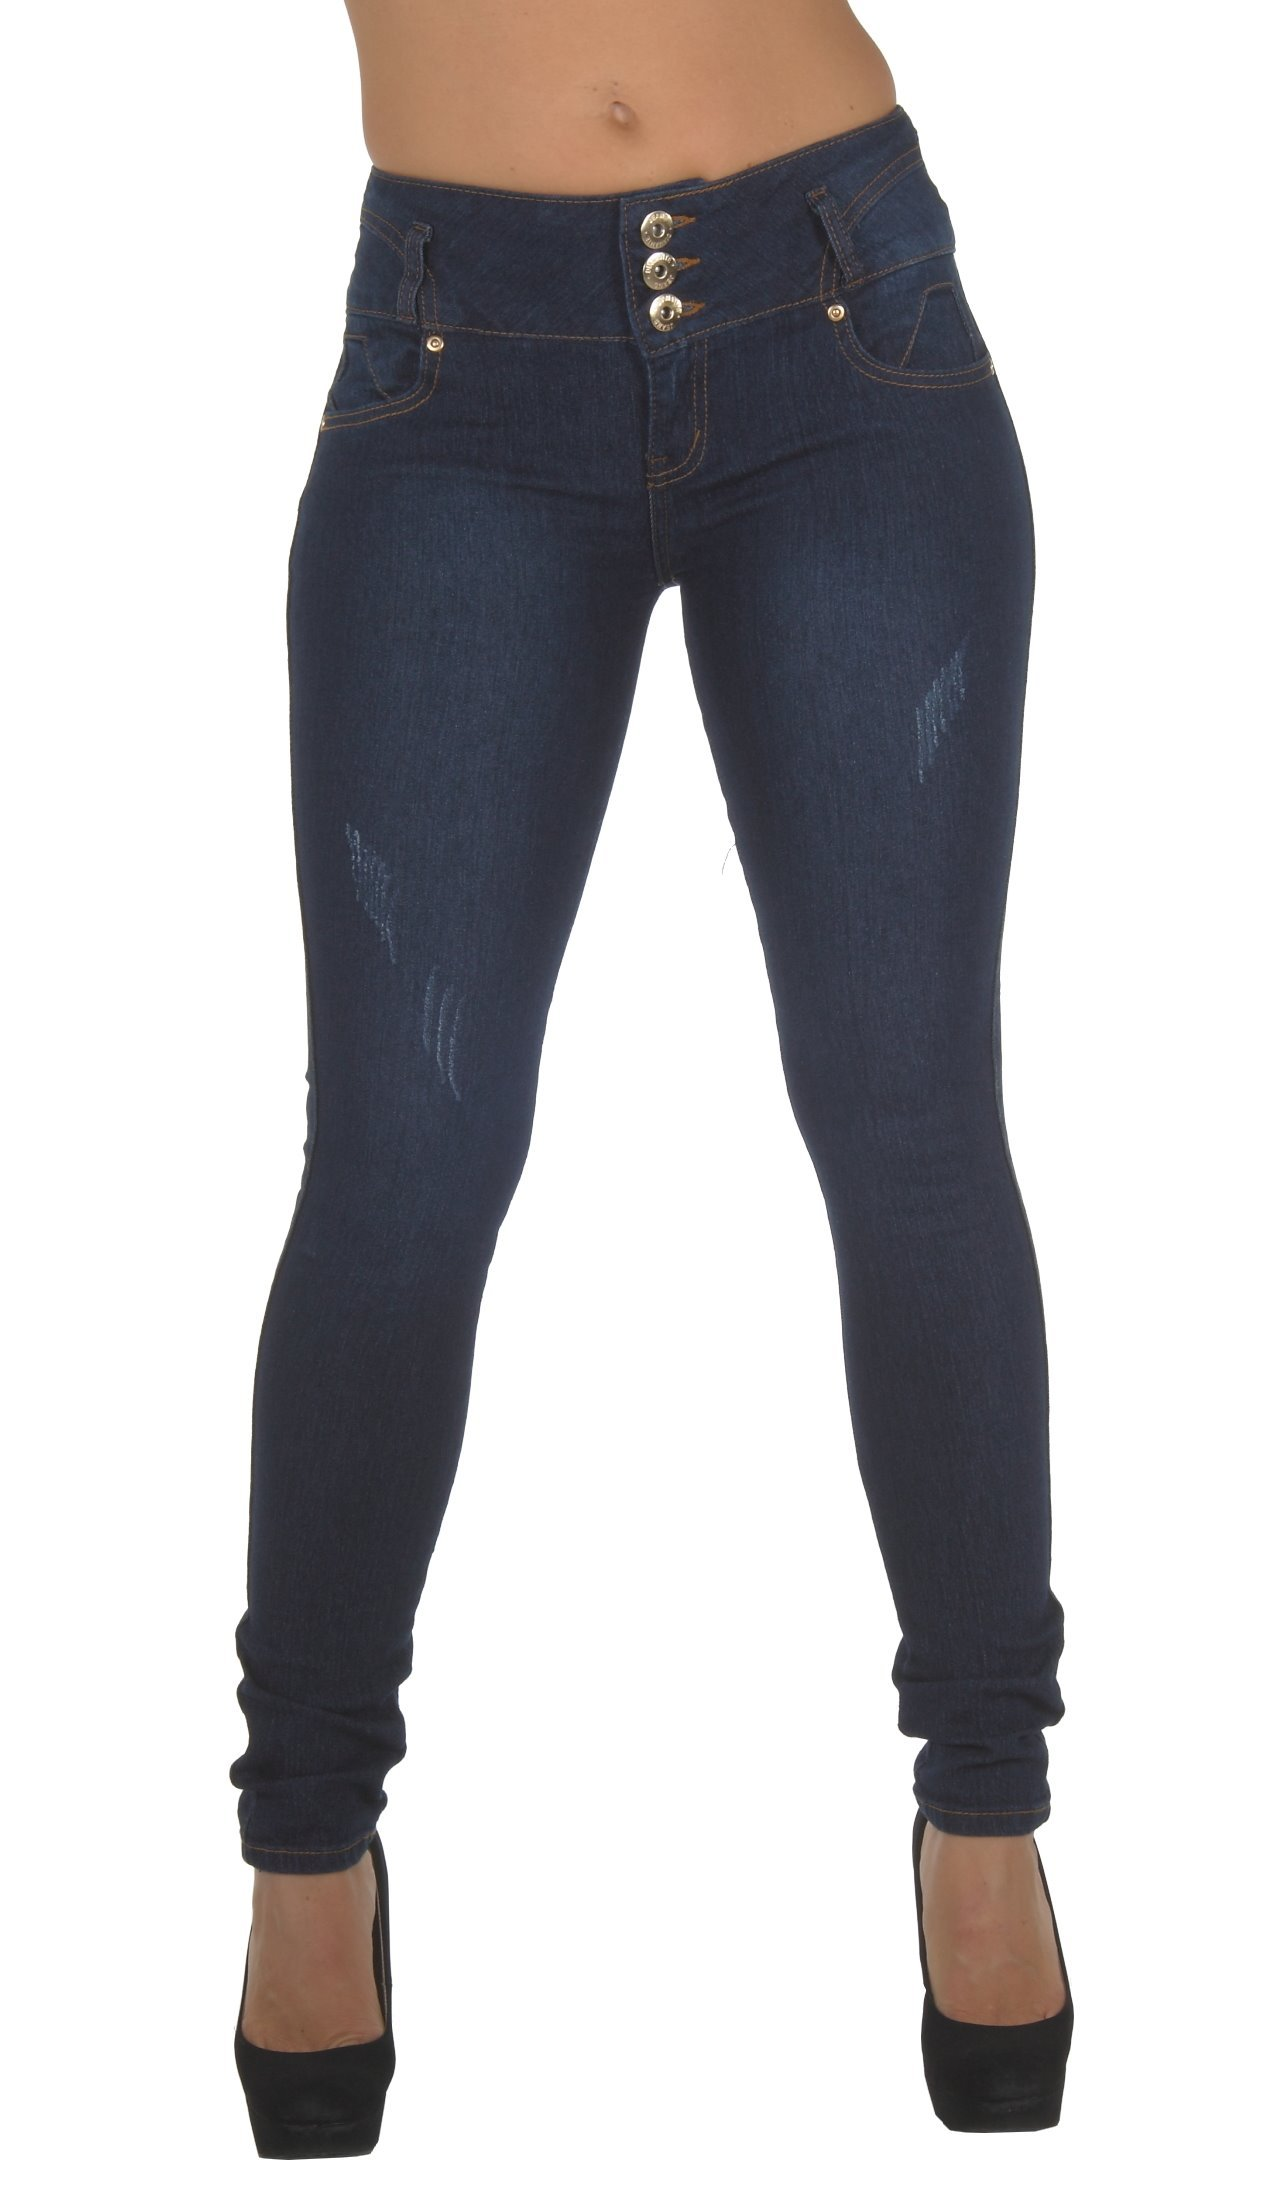 Diamante Style N552– Colombian Design, Butt Lift, Mid Waist, Skinny Jeans in Navy Size 11